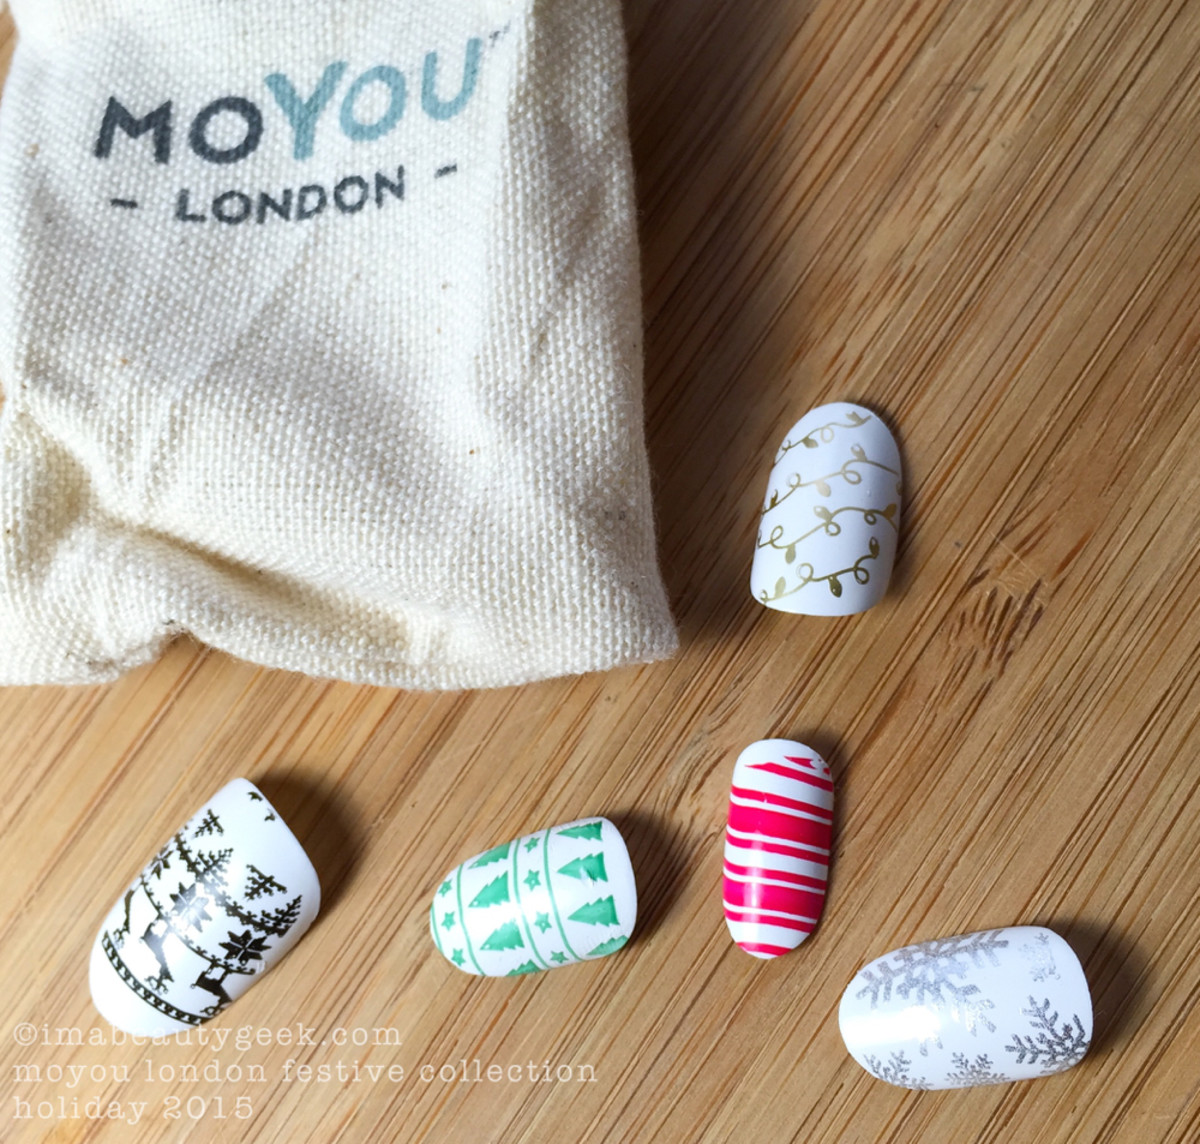 MoYou London Stamping Plate Festive Collection 2015